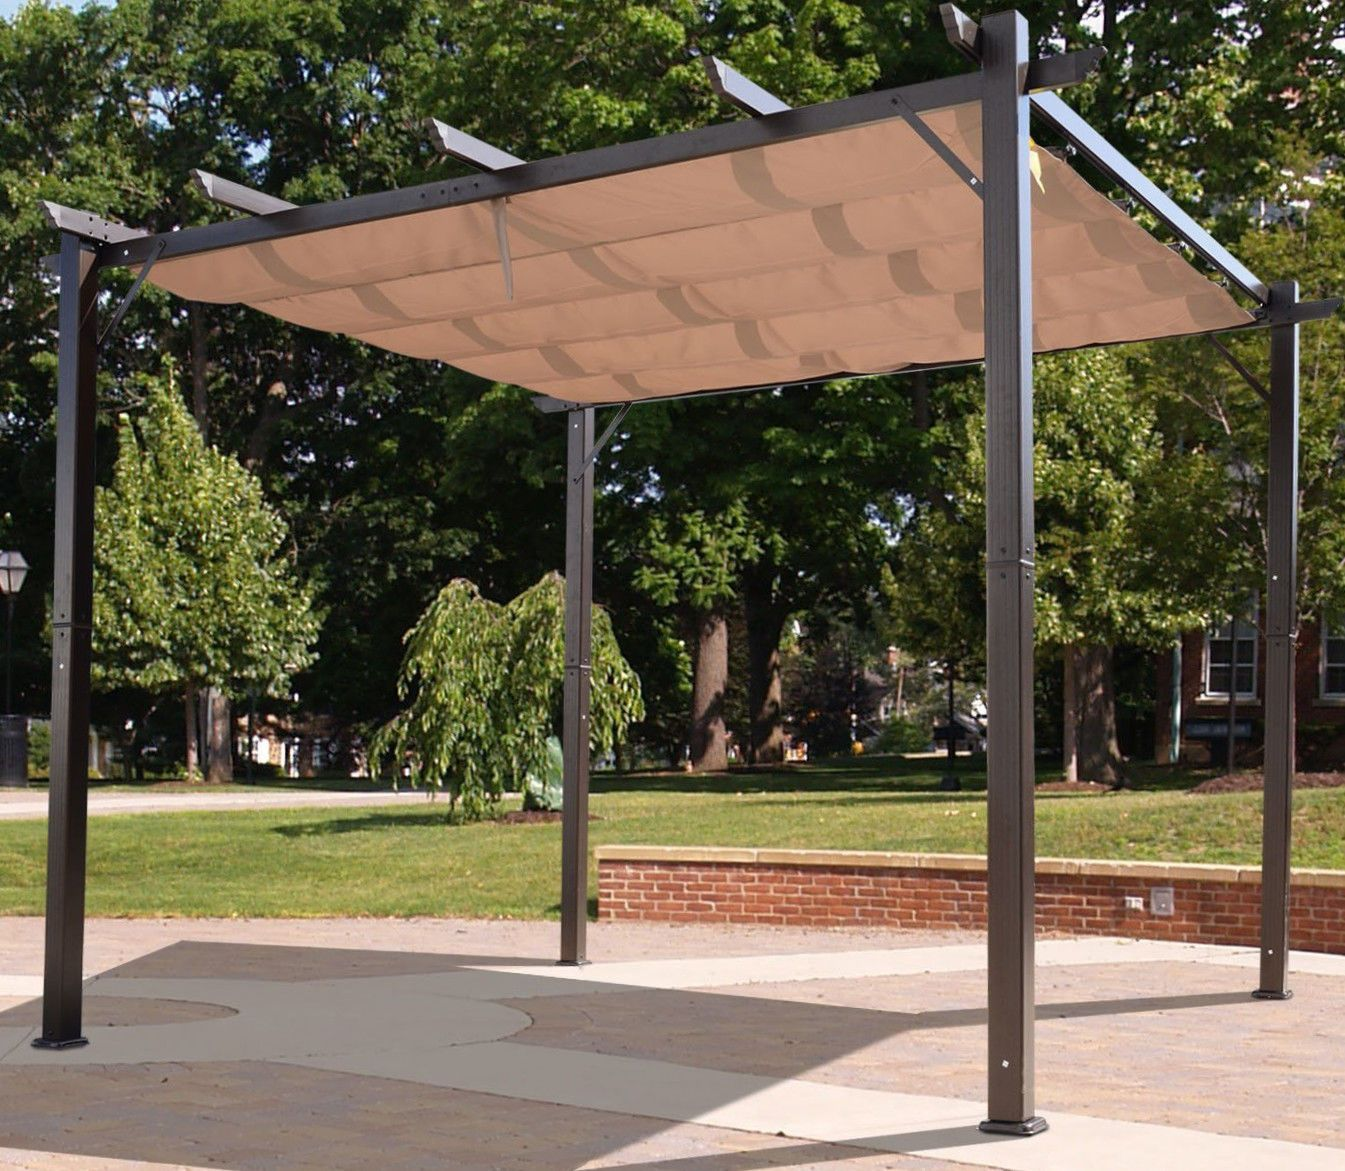 Outdoor Pergola Aluminum Canopy Retractable Shade Shelter 10x10 Patio Gazebo Kit Outdoor Pergola Patio Gazebo Pergola